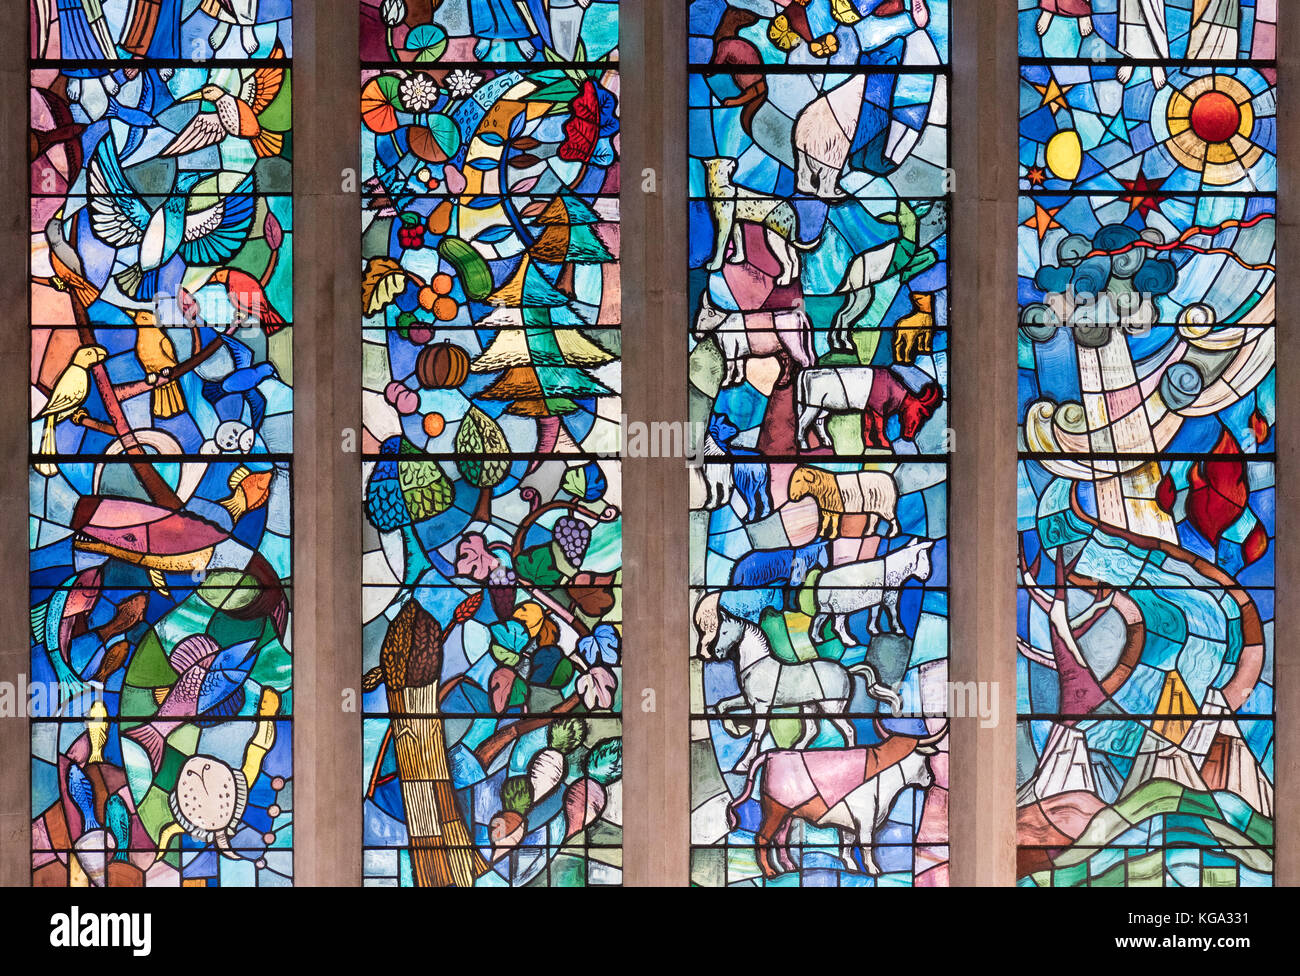 Stained glass windows featuring animals and crops in the Royal Agricultural University Chapel, Cirencester, gloucestershire, - Stock Image